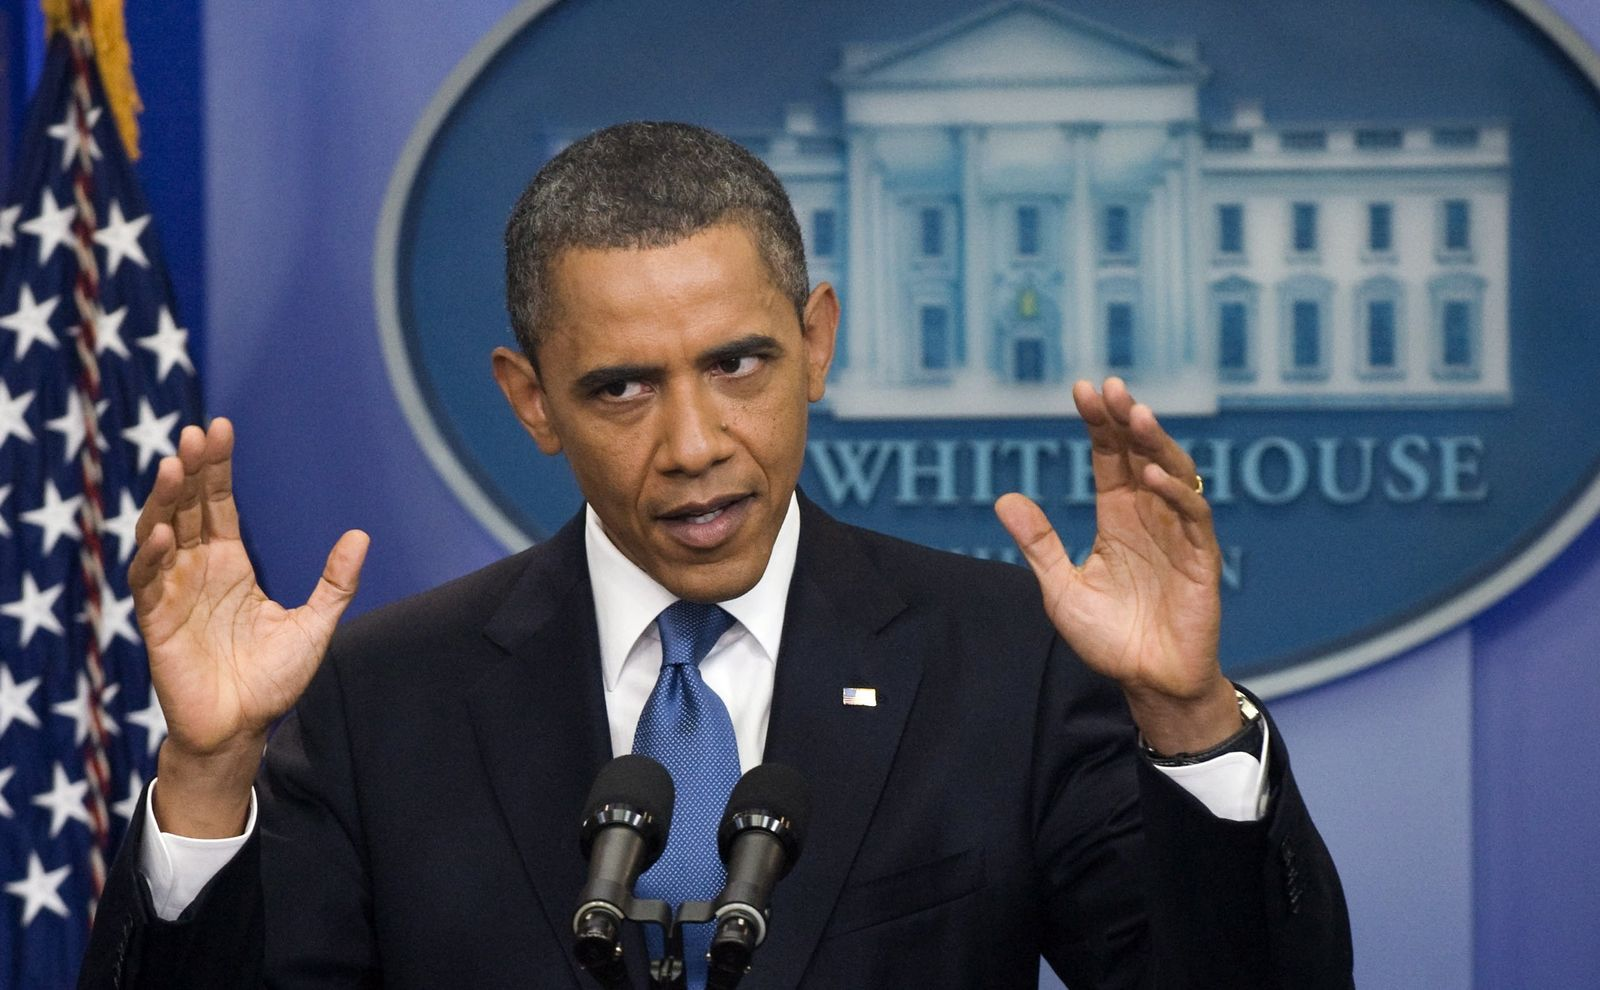 US President Barack Obama holds a press conference.